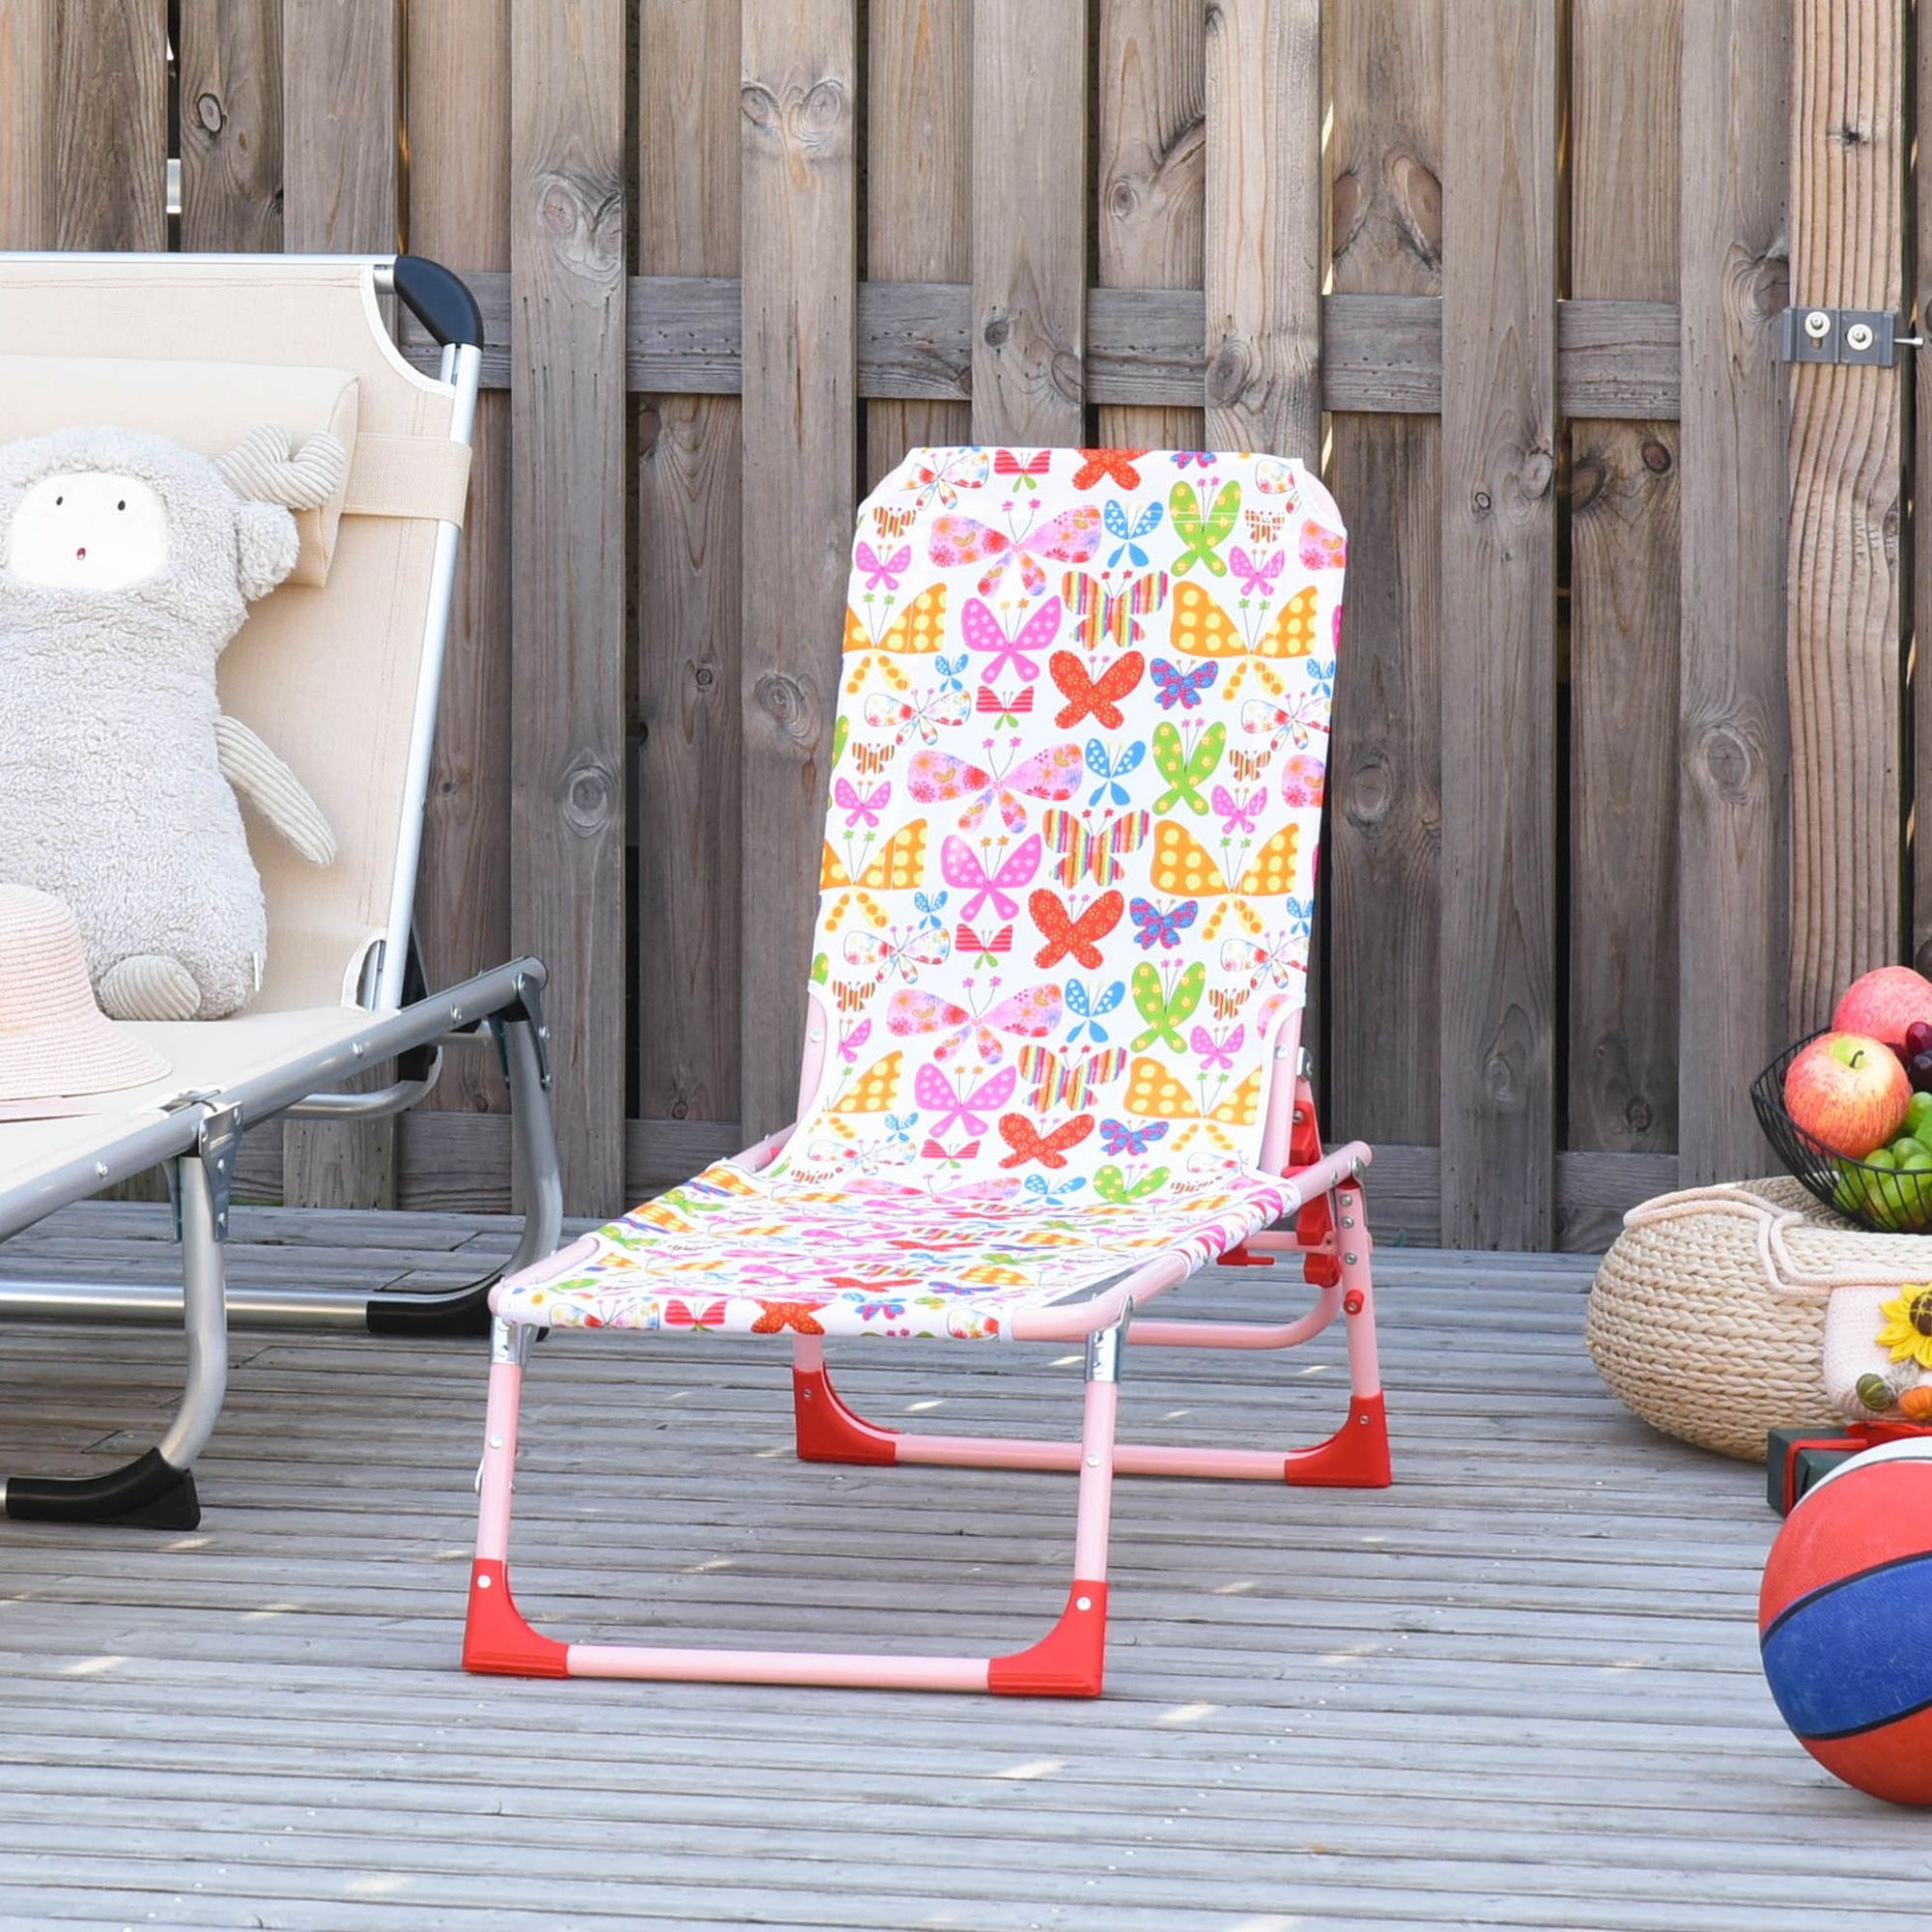 Outsunny Lounge Chair for Kids Recliner Foldable Lightweight with Adjustable Backrest